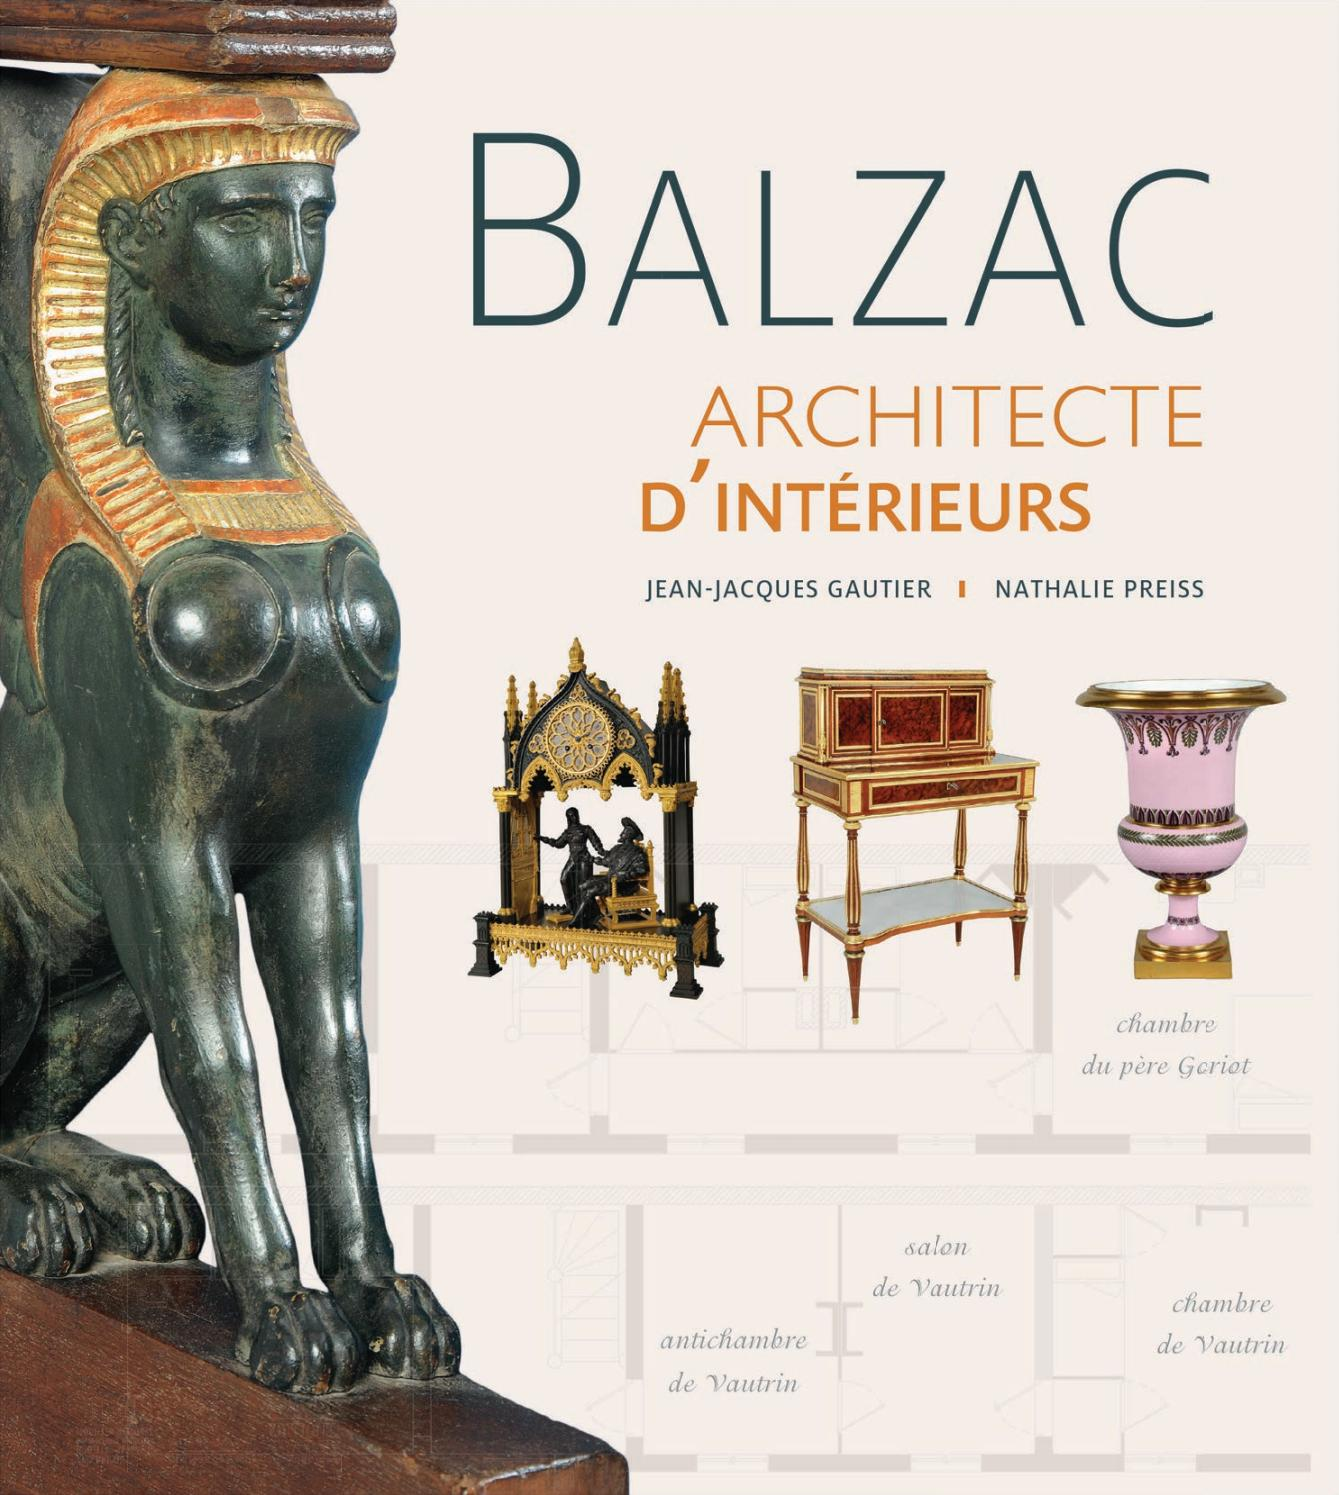 balzac architecte d 39 int rieurs extrait by somogy ditions d 39 art issuu. Black Bedroom Furniture Sets. Home Design Ideas